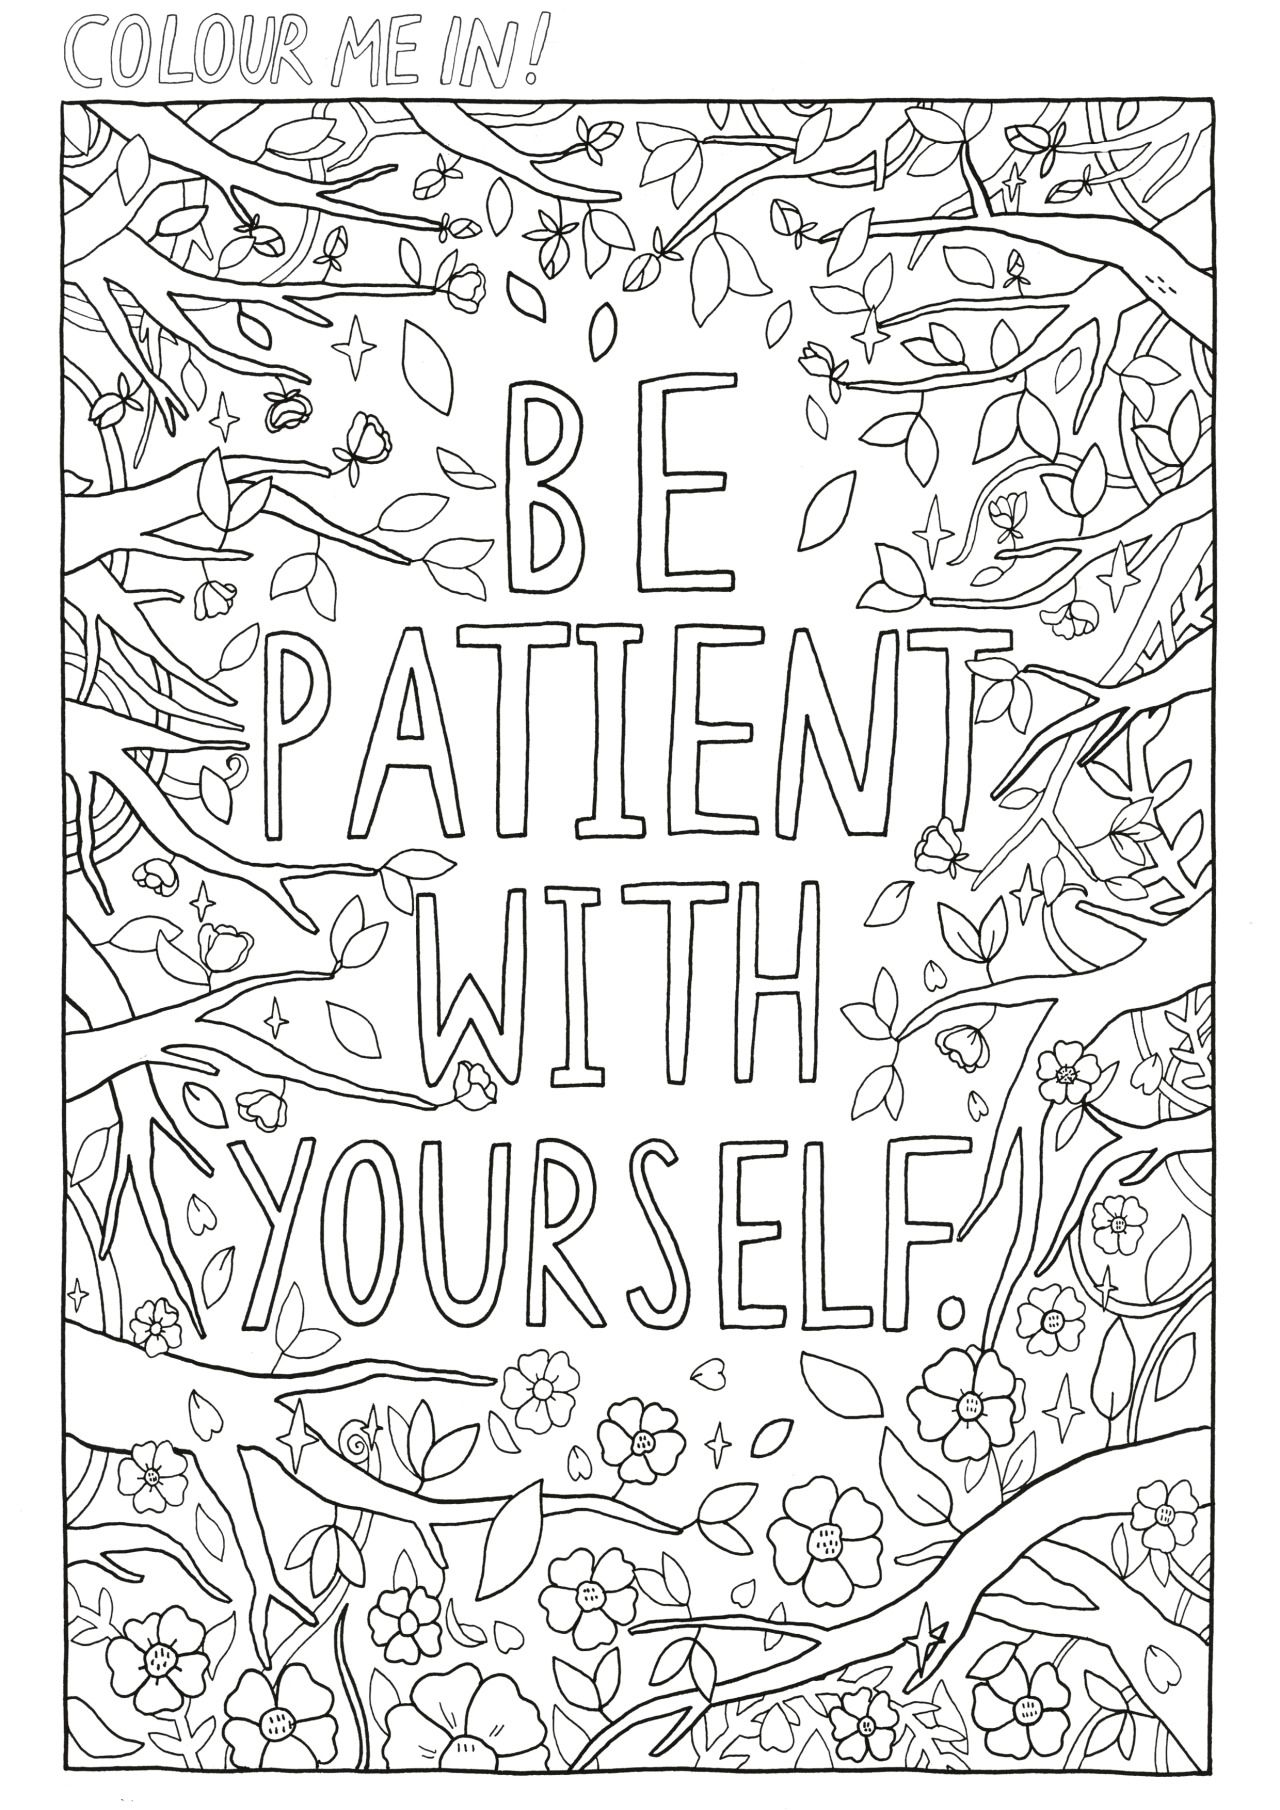 Self care coloring page